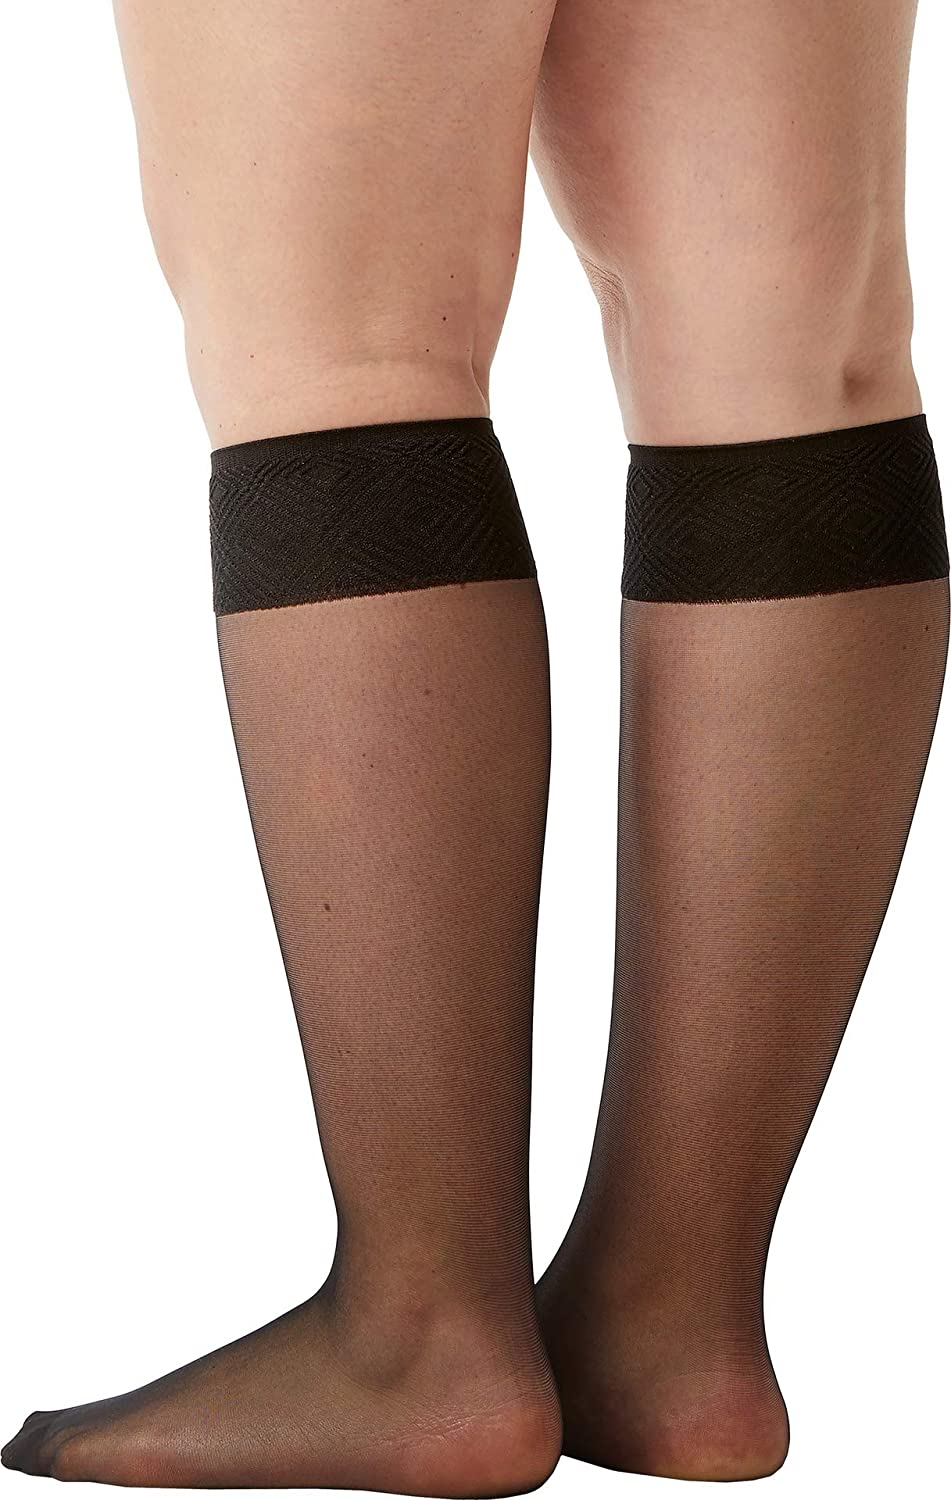 28e99726550f5 Spanx Women's Sheer Hi-Knee Socks - Two Pack! Black One Size at Amazon  Women's Clothing store: